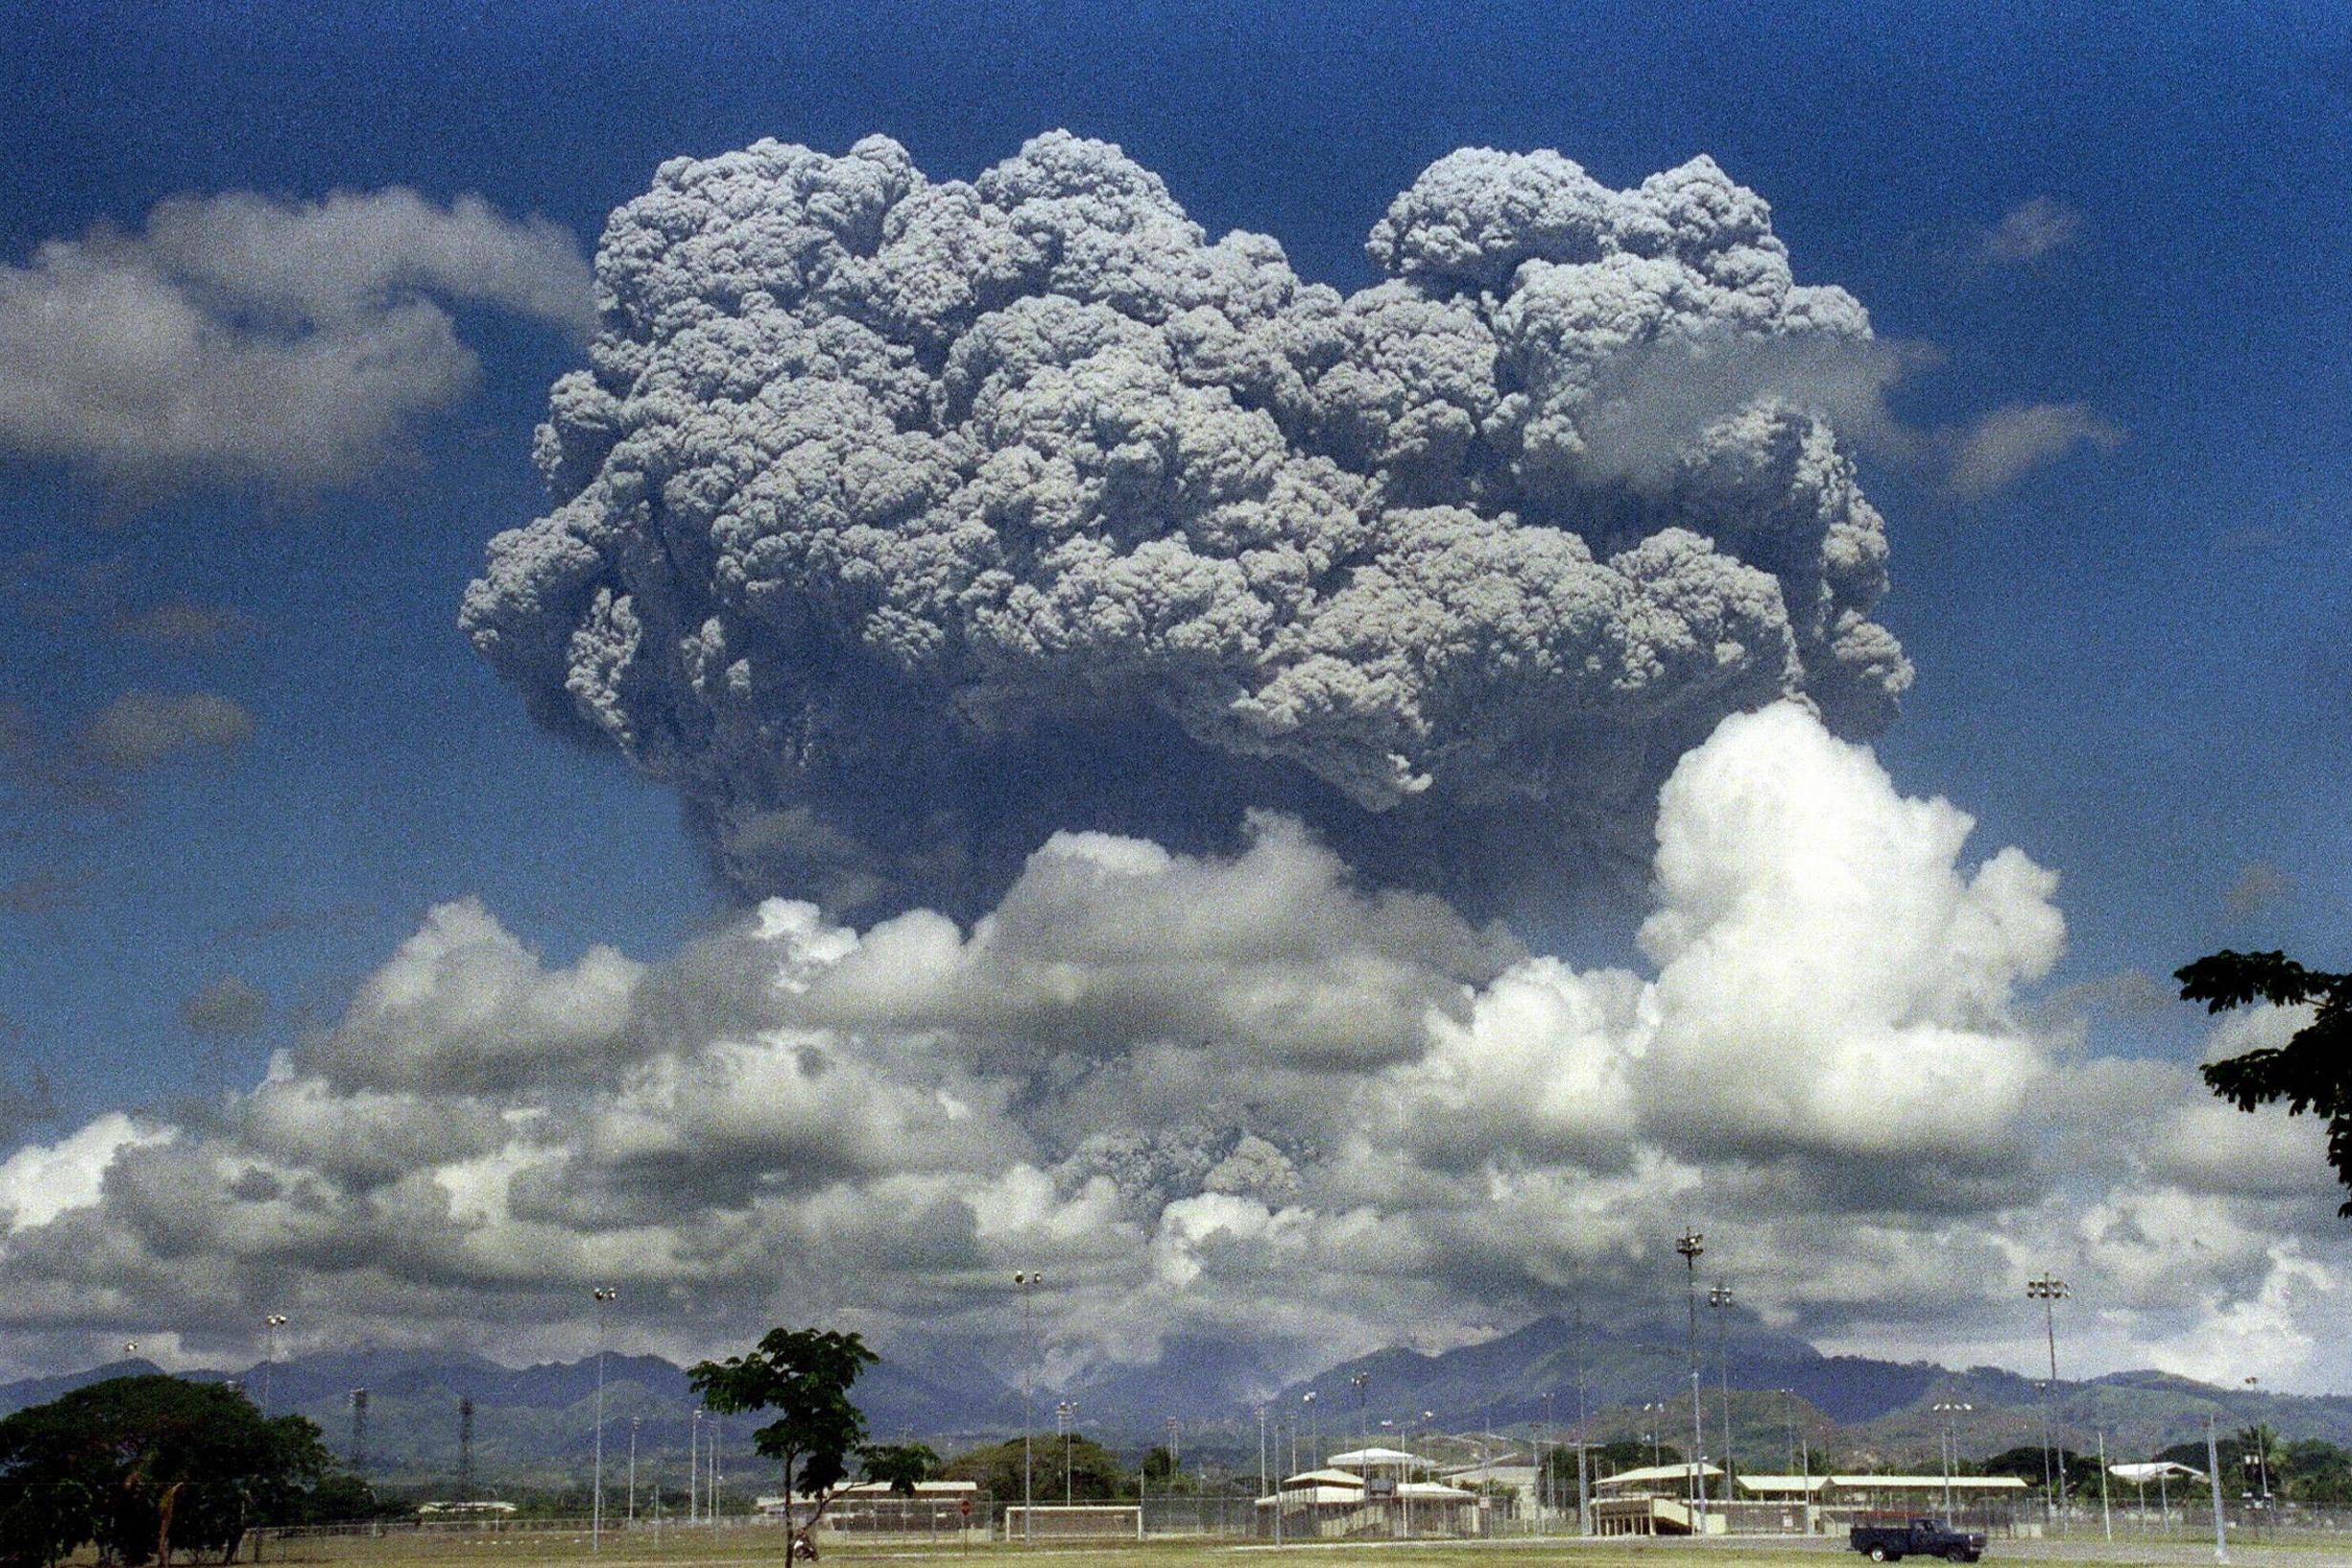 Geoengineering: Sci-fi ways scientists could mimic volcanic eruptions to help avert climate disaster